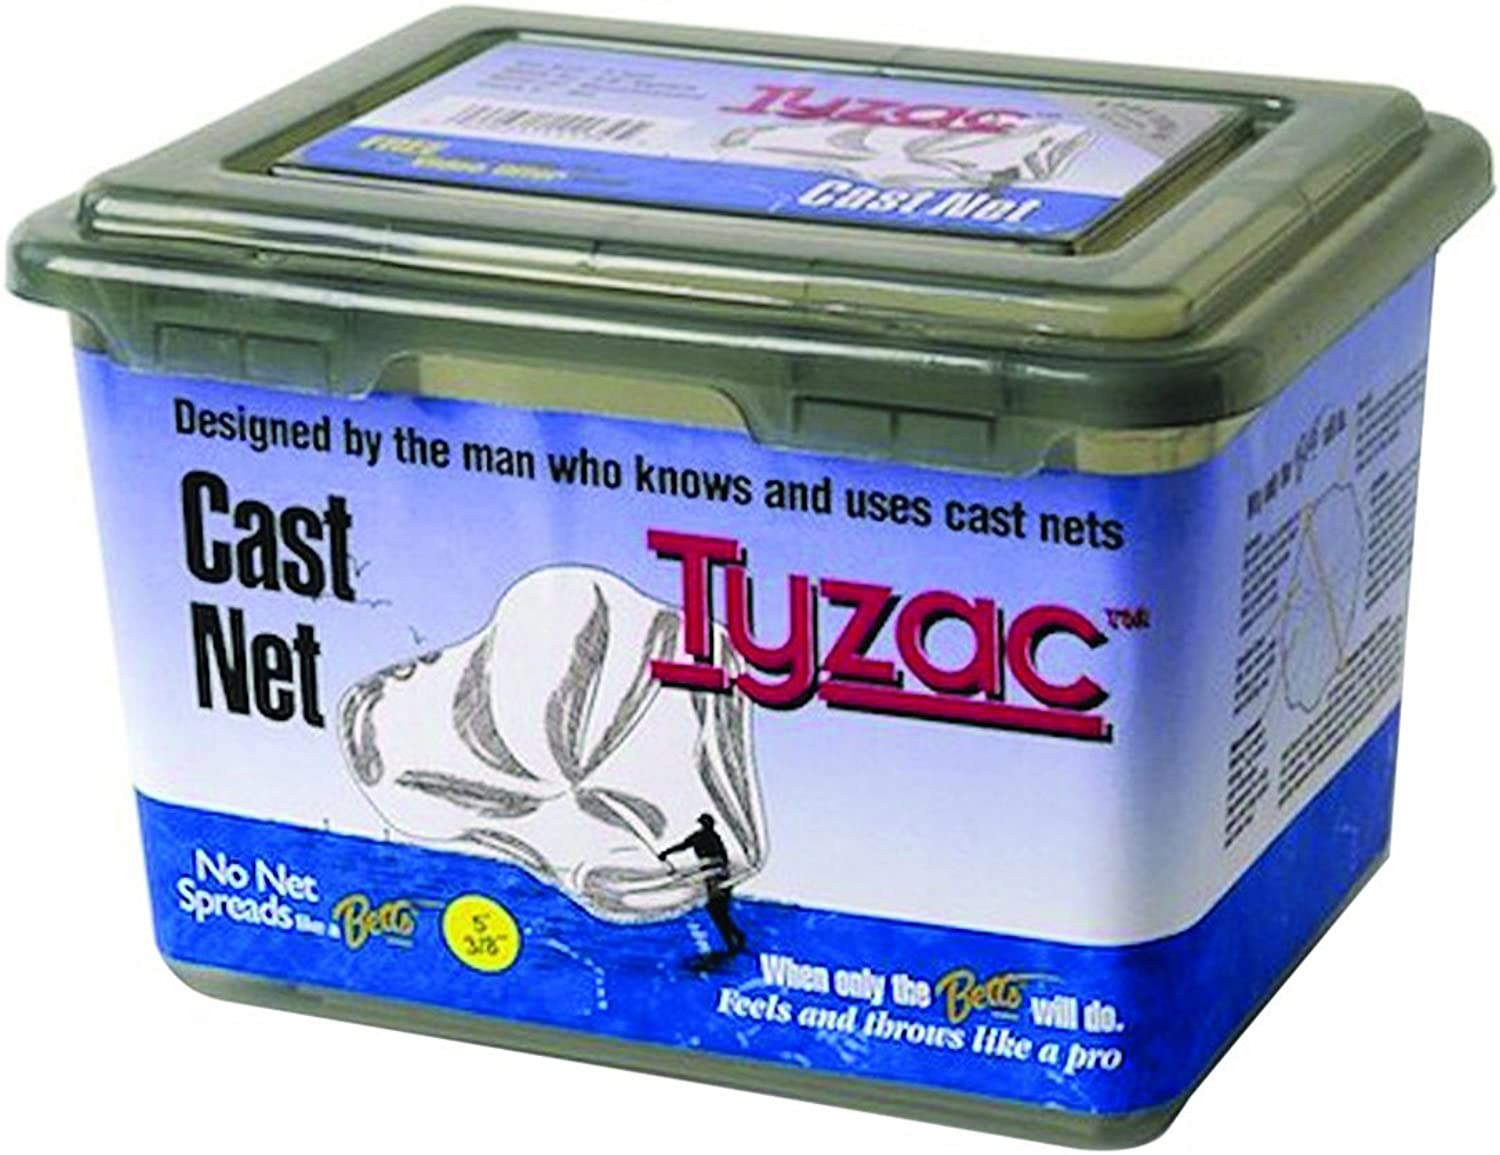 Betts 3Foot Tyzac Nylon Cast Net with Iron Weights, 3 8Inch Mesh, Boxed